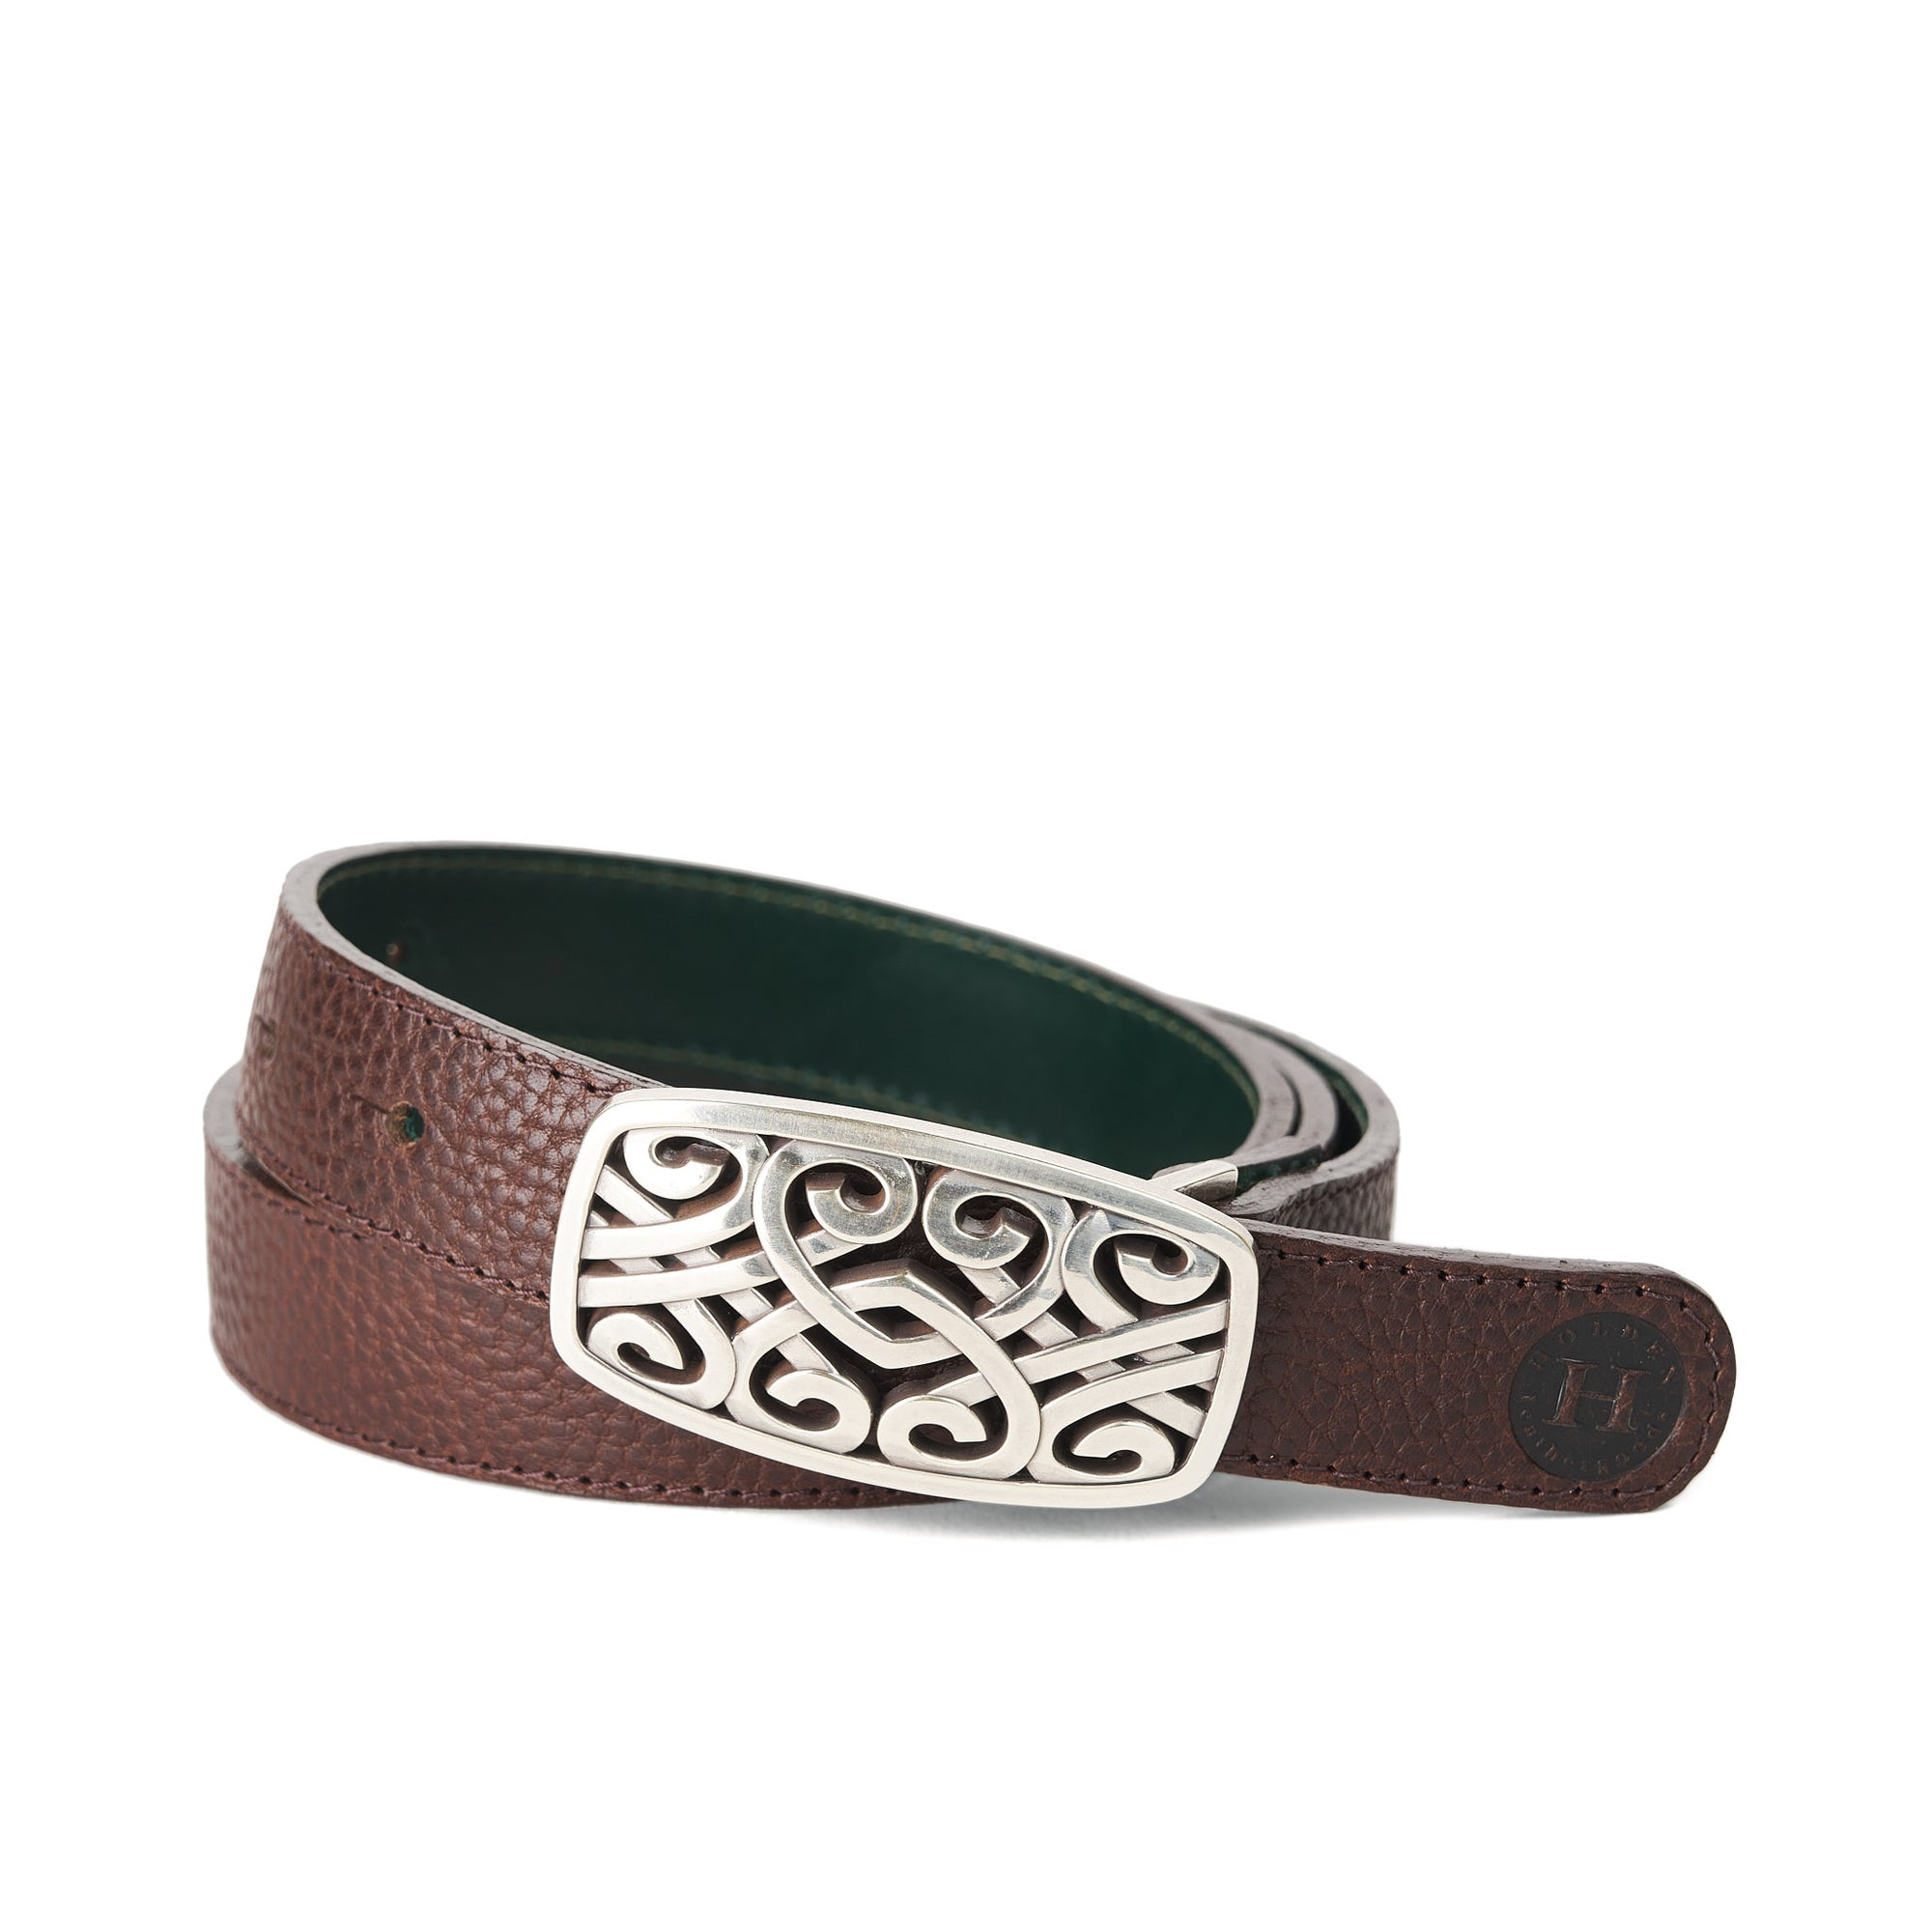 Holden Brandon Celtic Belt - Dark Brown